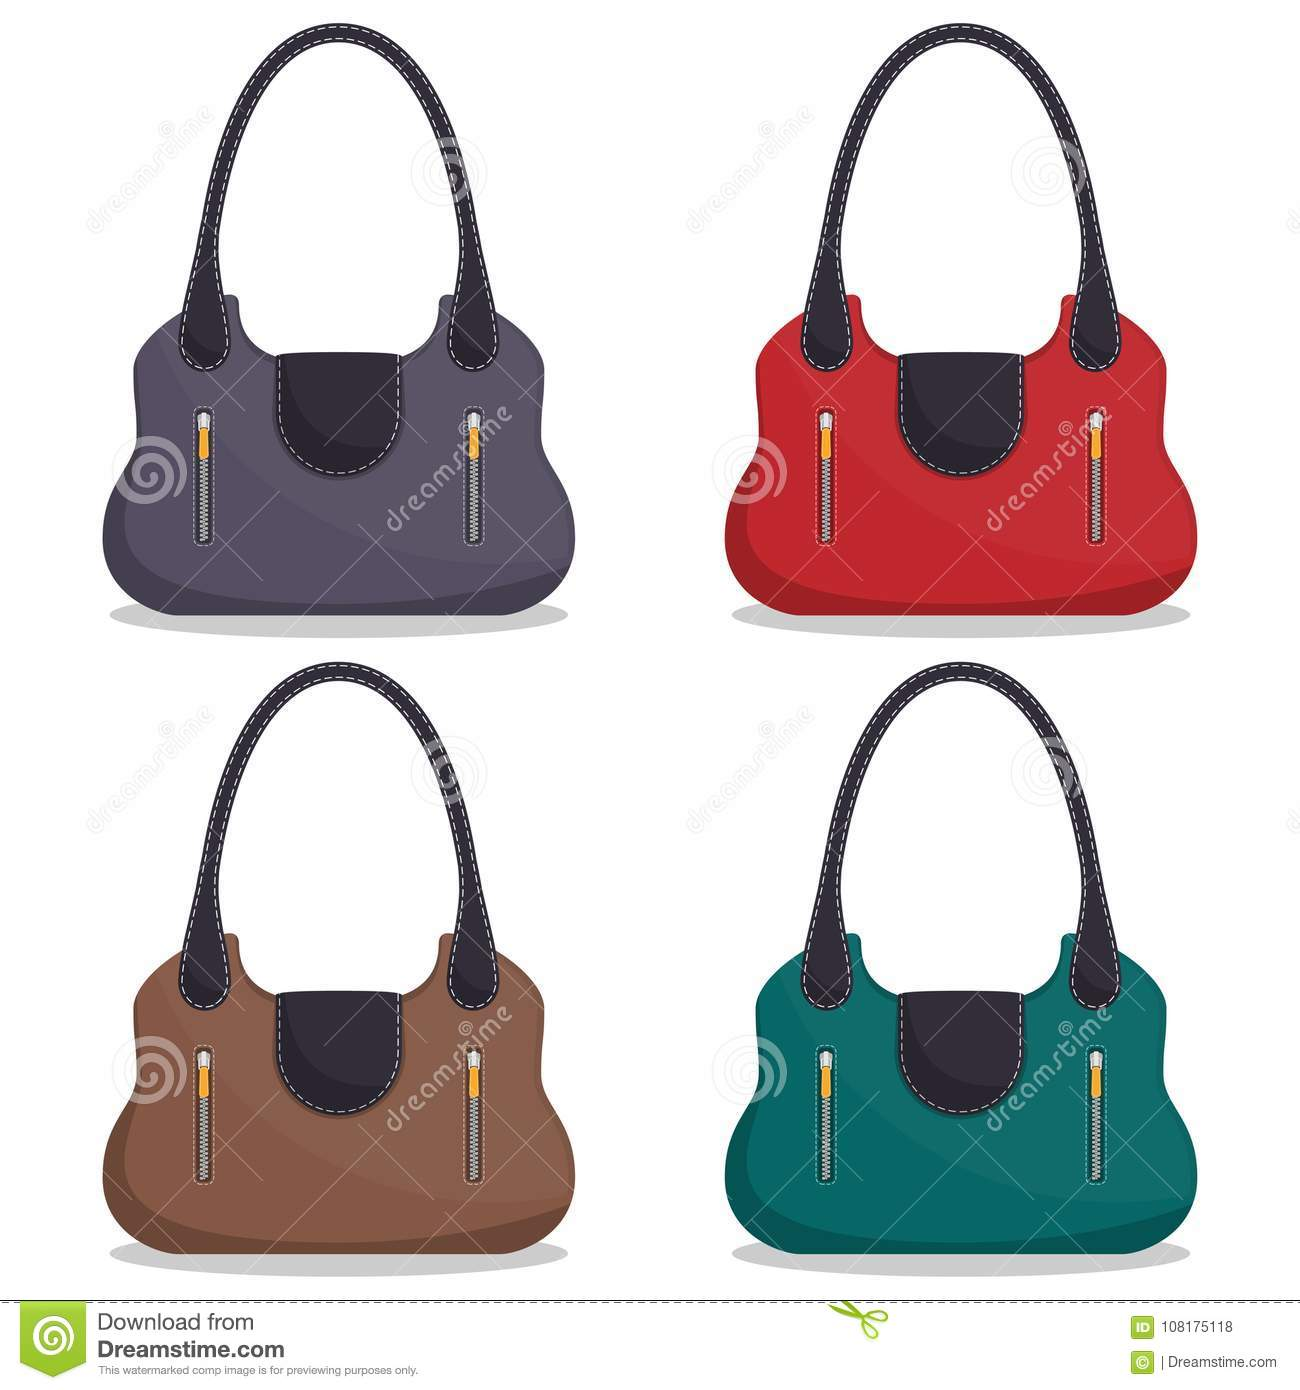 e87e79d31d Collection of stylish colorful leather handbags with white stitching. Woman  bag. Ladies handbags isolated on white background. Fashion accessories.